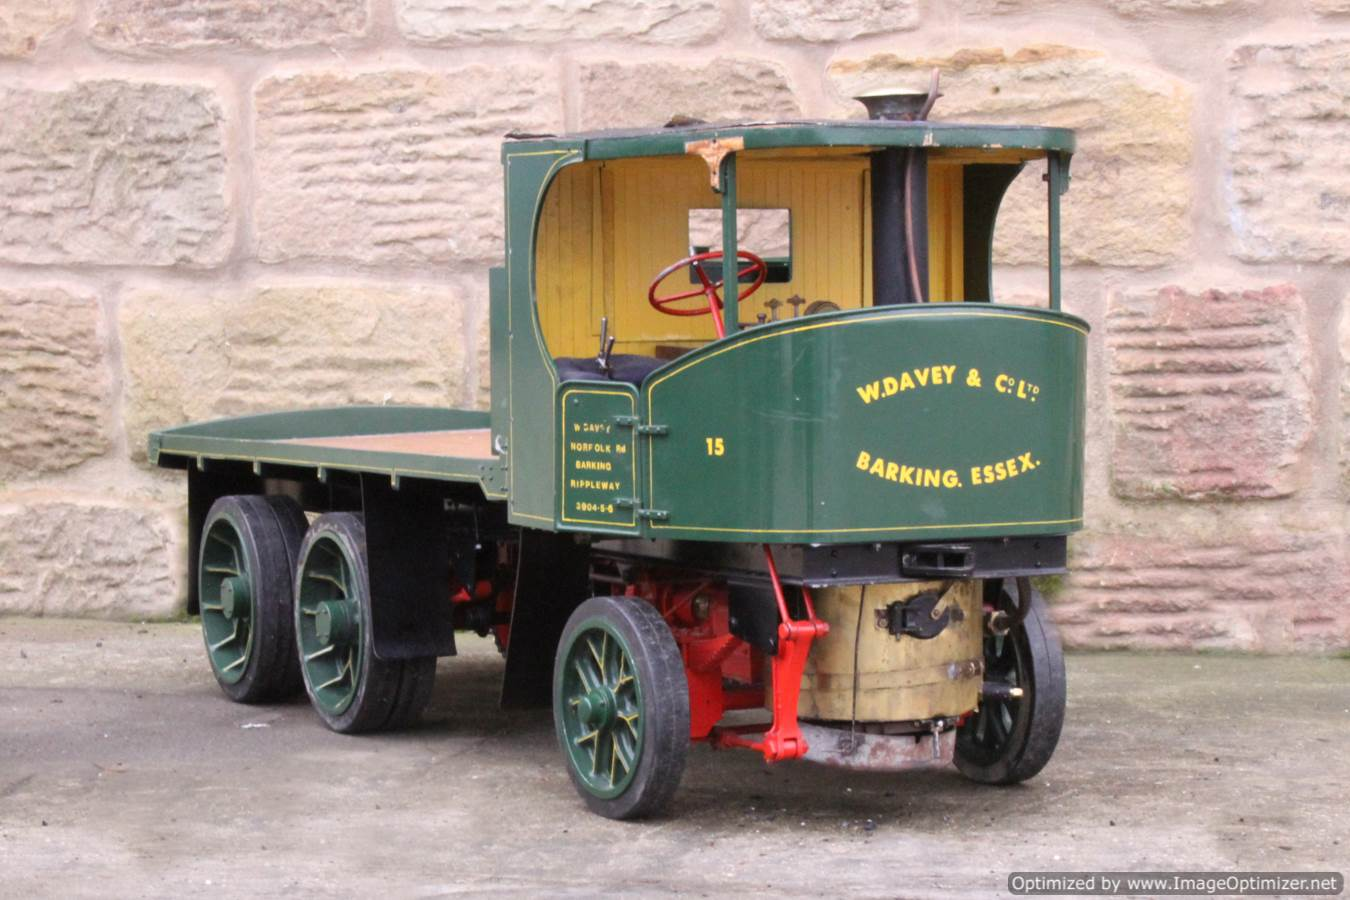 test Cayton twin axle live steam lorry for sale 07 Optimized